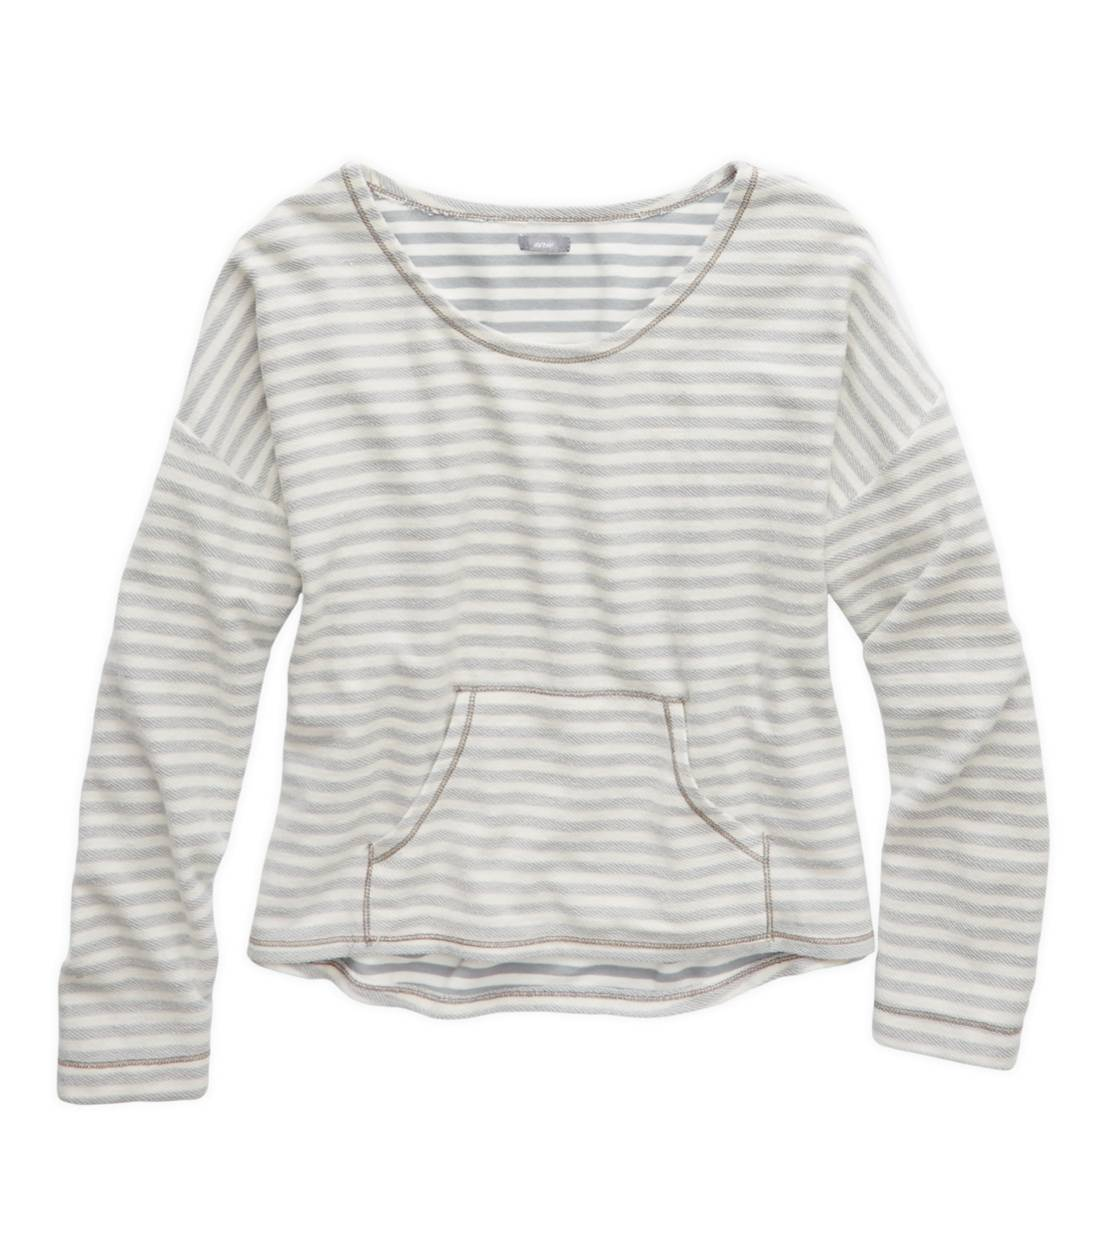 Slab Grey Aerie Inside-Out Sweatshirt